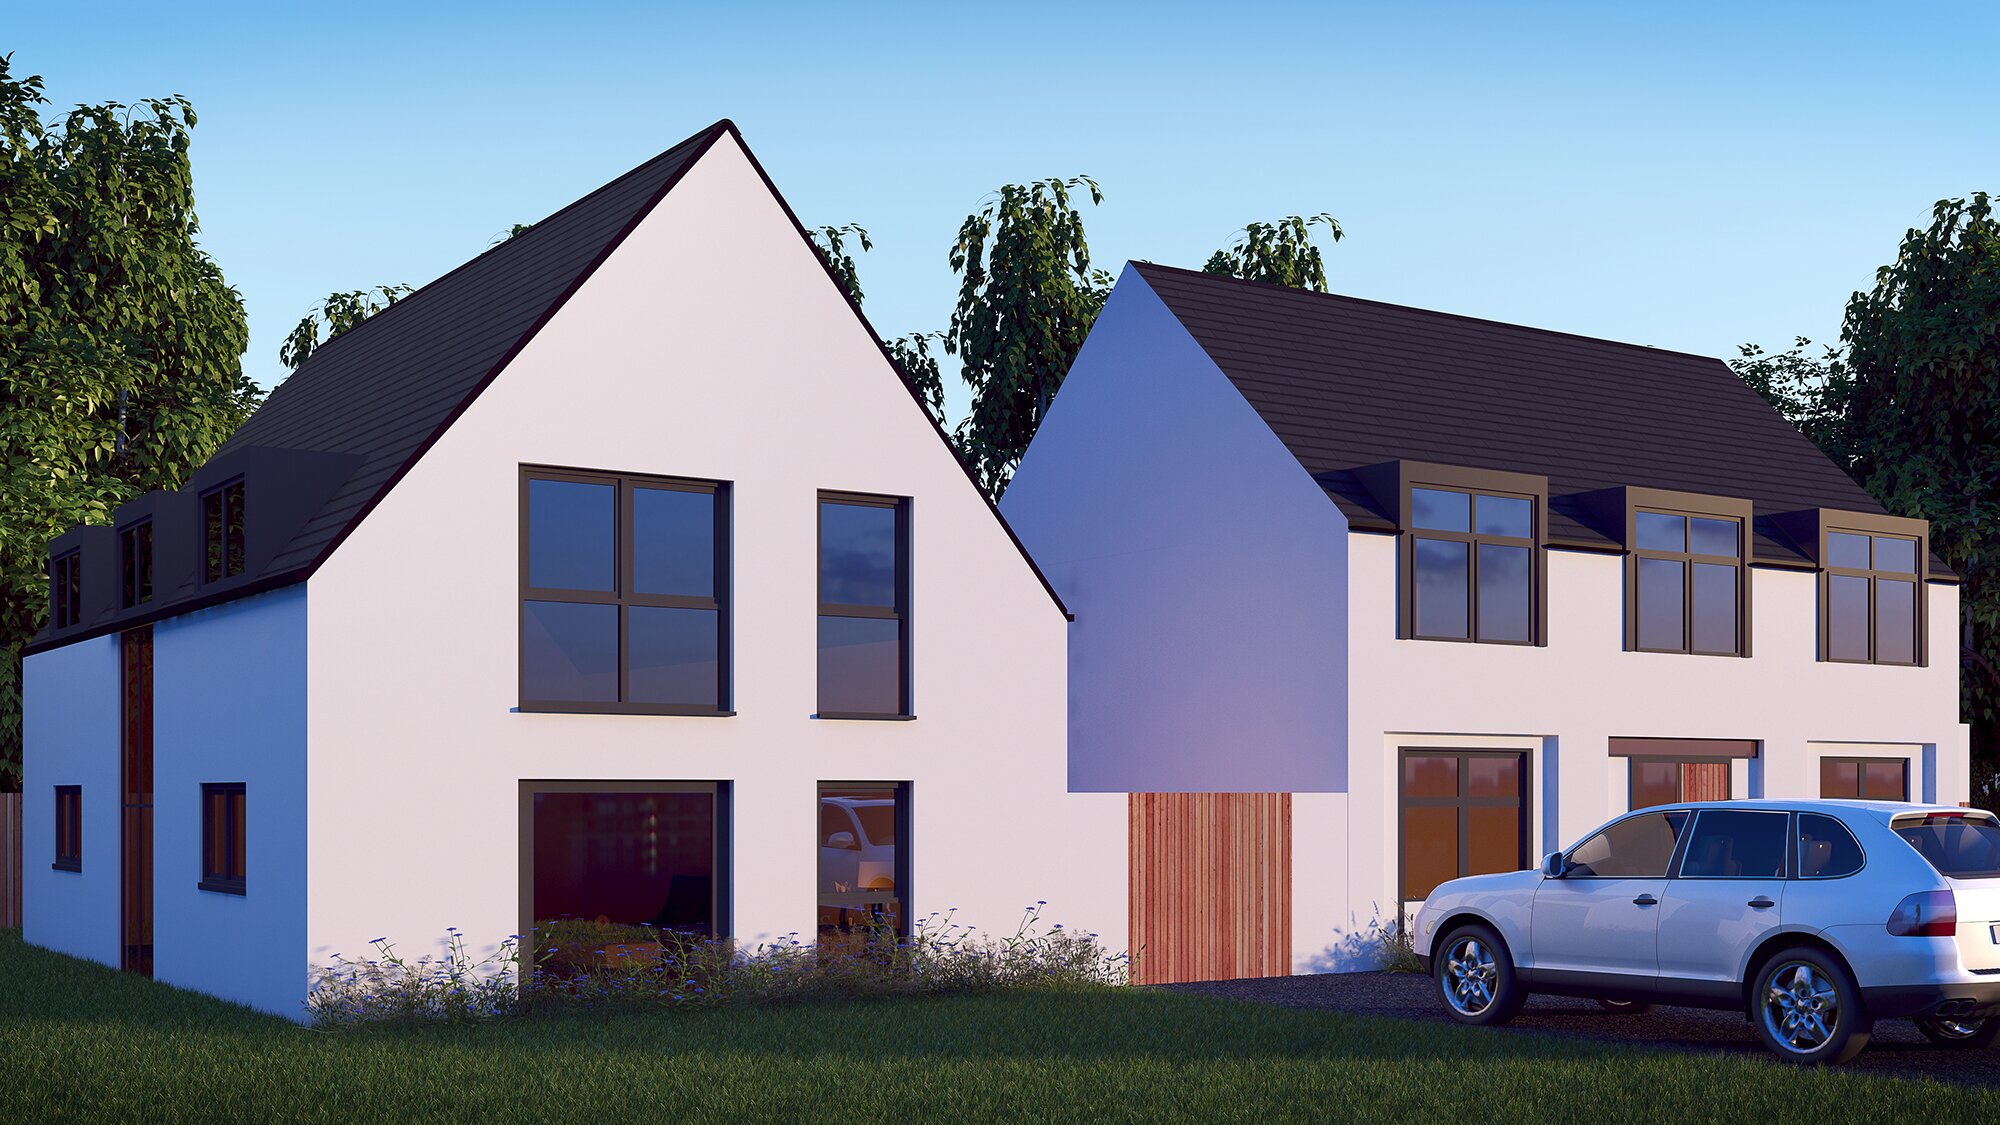 Cambridge (Leys Road) Residential Development Stage 2 Loan - Senior Tranche